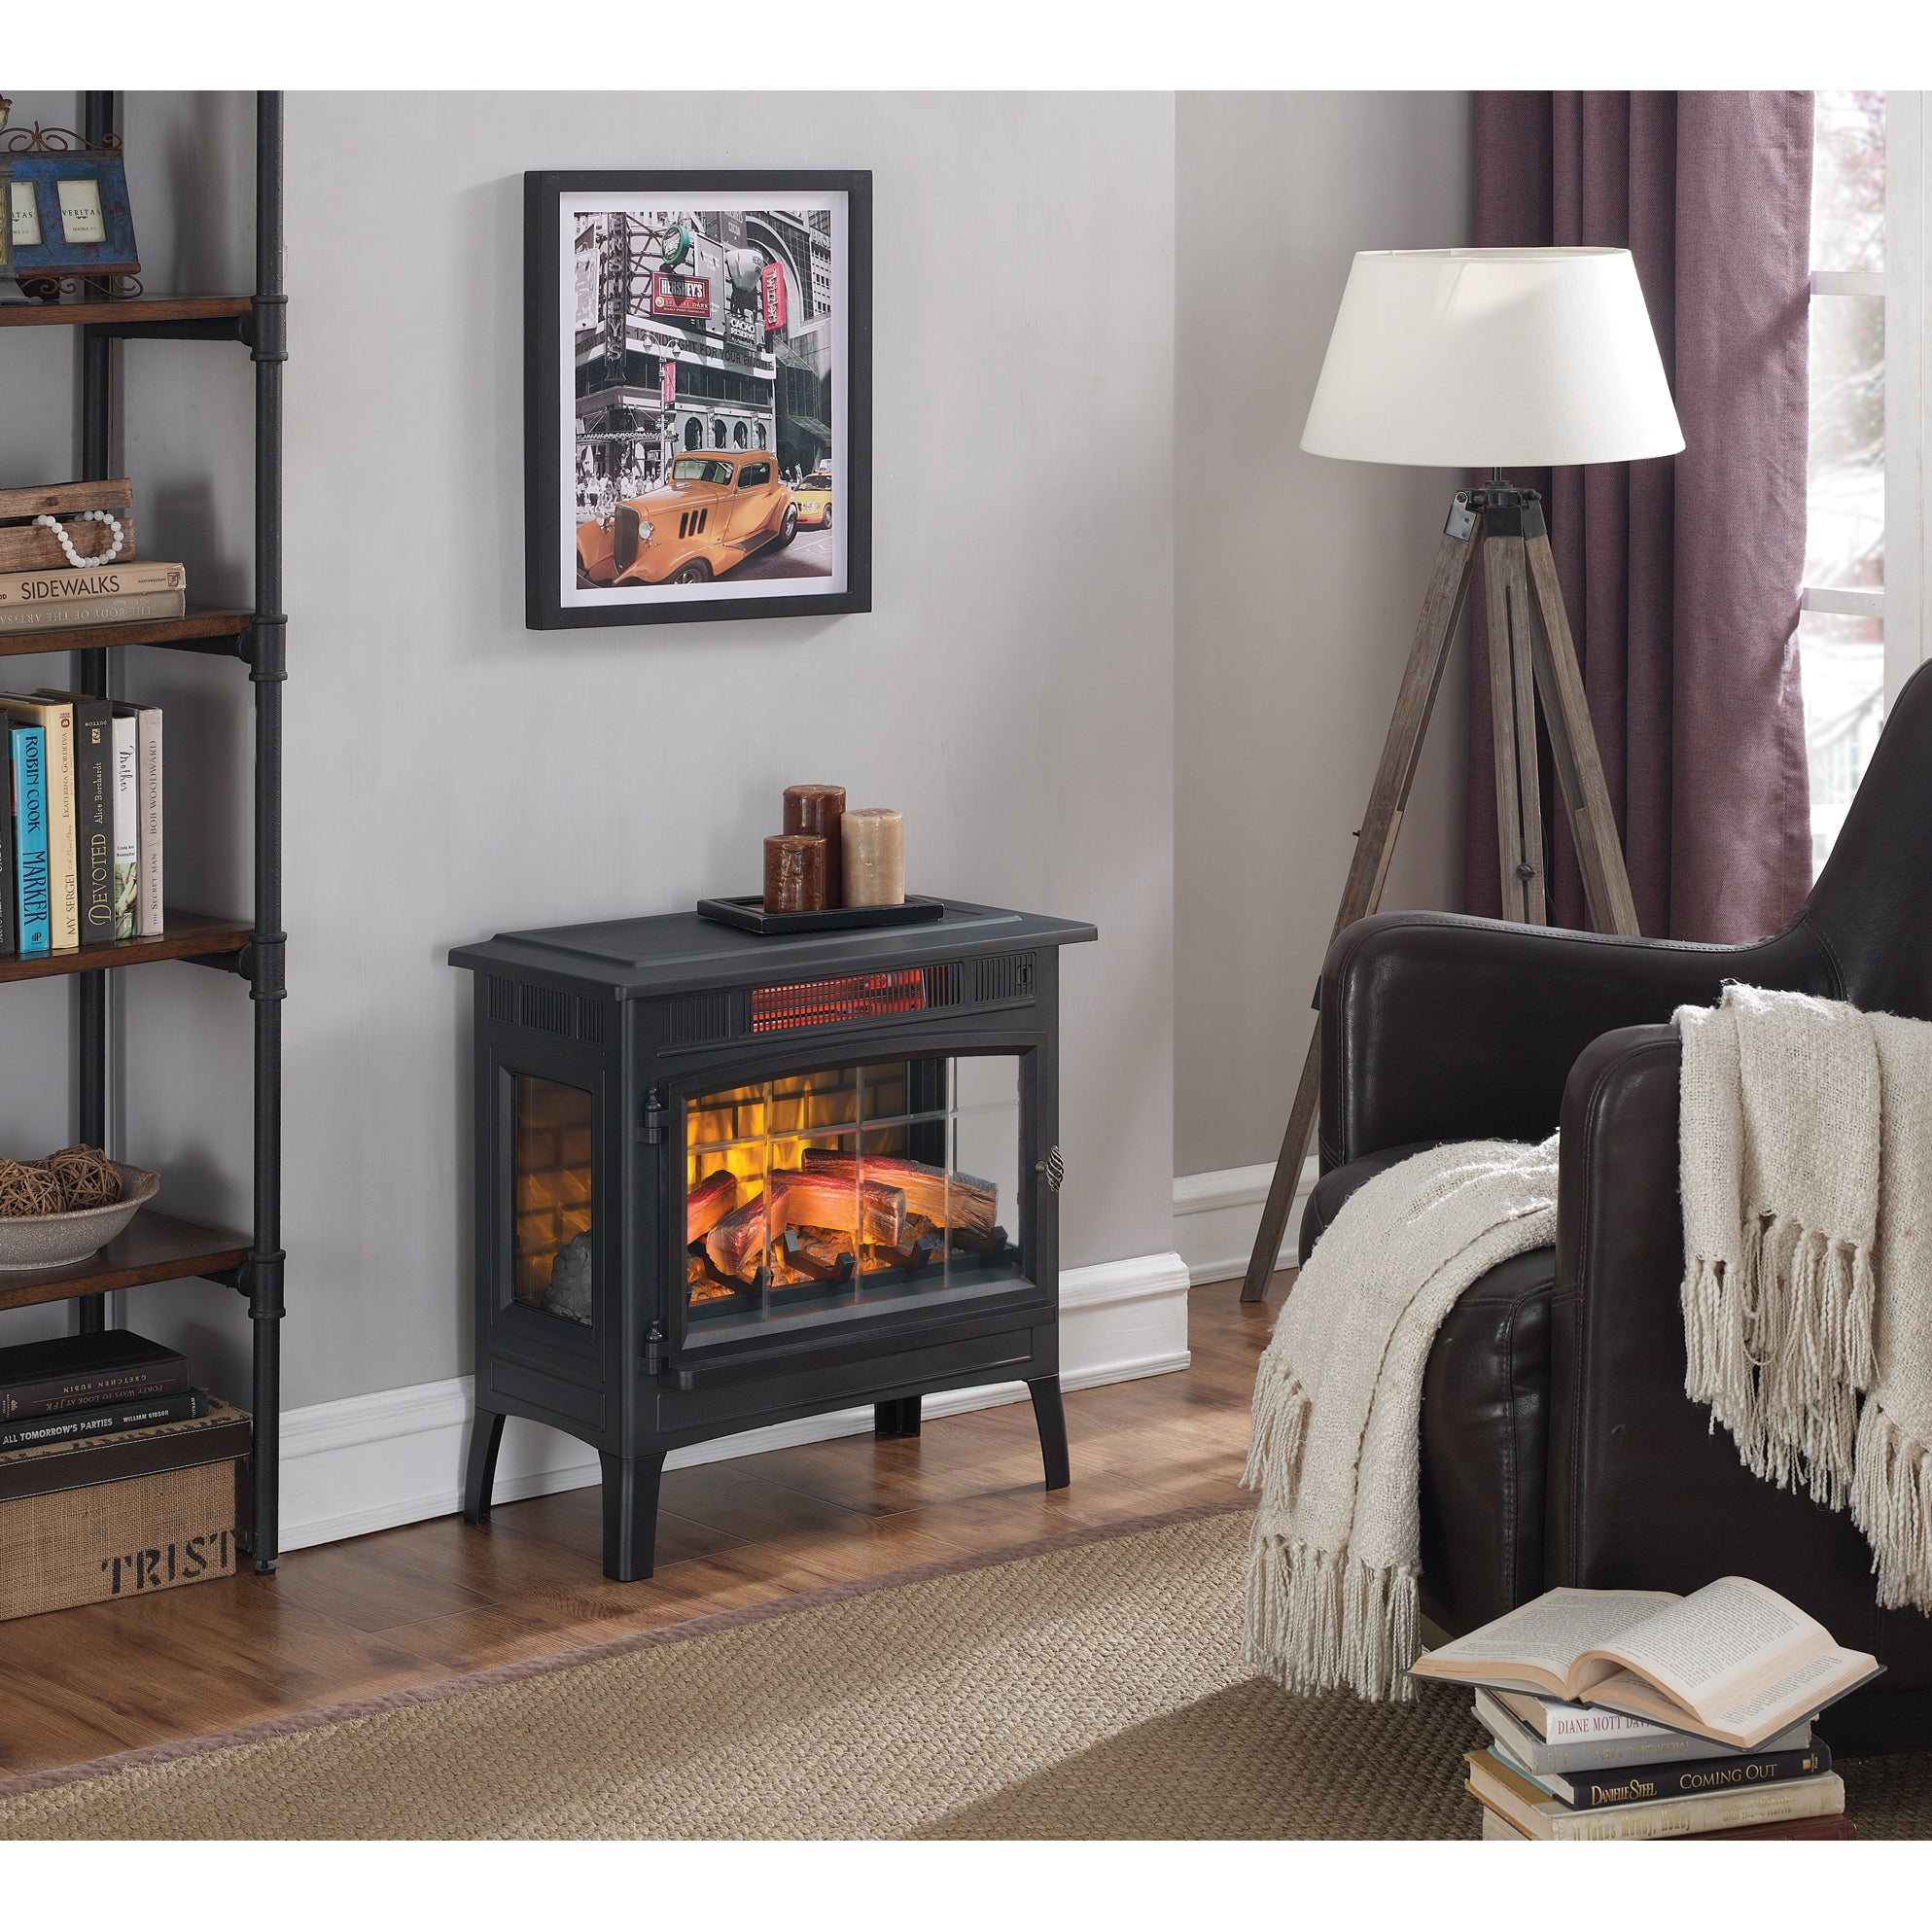 Shop Infrared Quartz Fireplace Stove With 3d Flame Effect Black